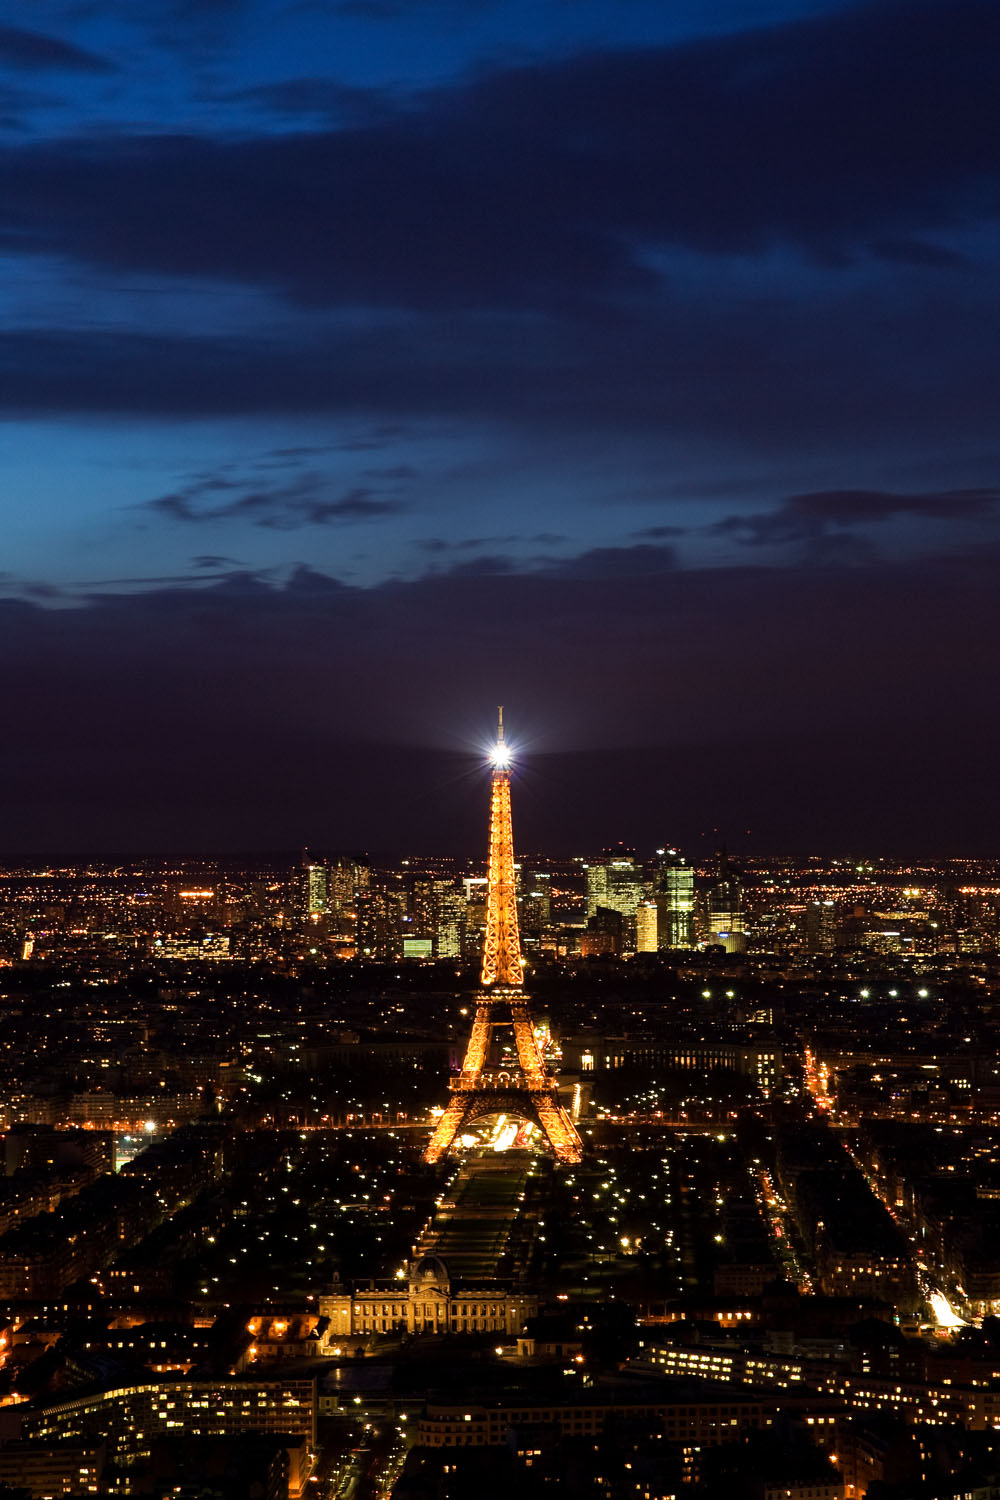 View of Eiffel Tower from Montparnasse Tower - Paris, France